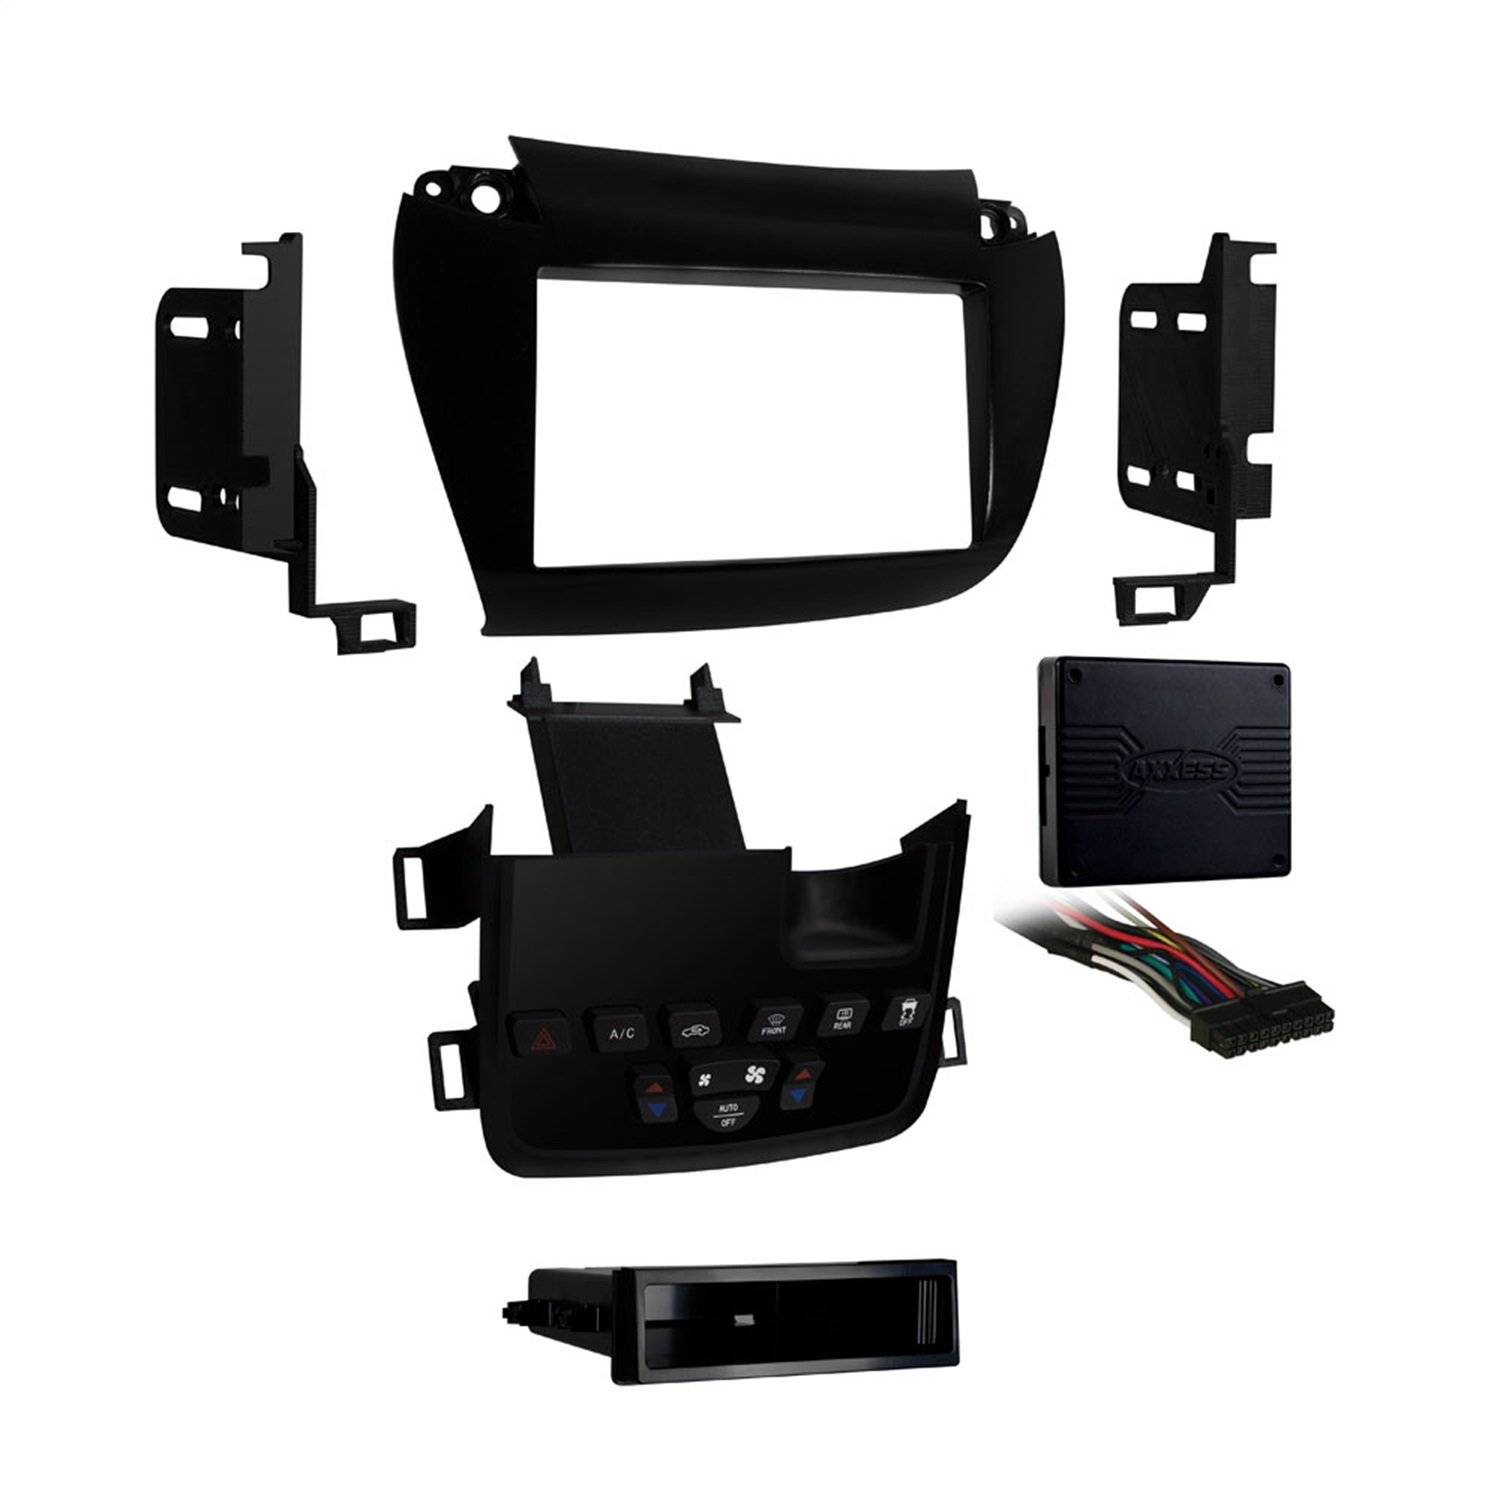 Metra 99-6520B 2011-Up Dodge Journey Dash Kit with Factory 4.3-Inch Screen Retention (Matte black) by Metra